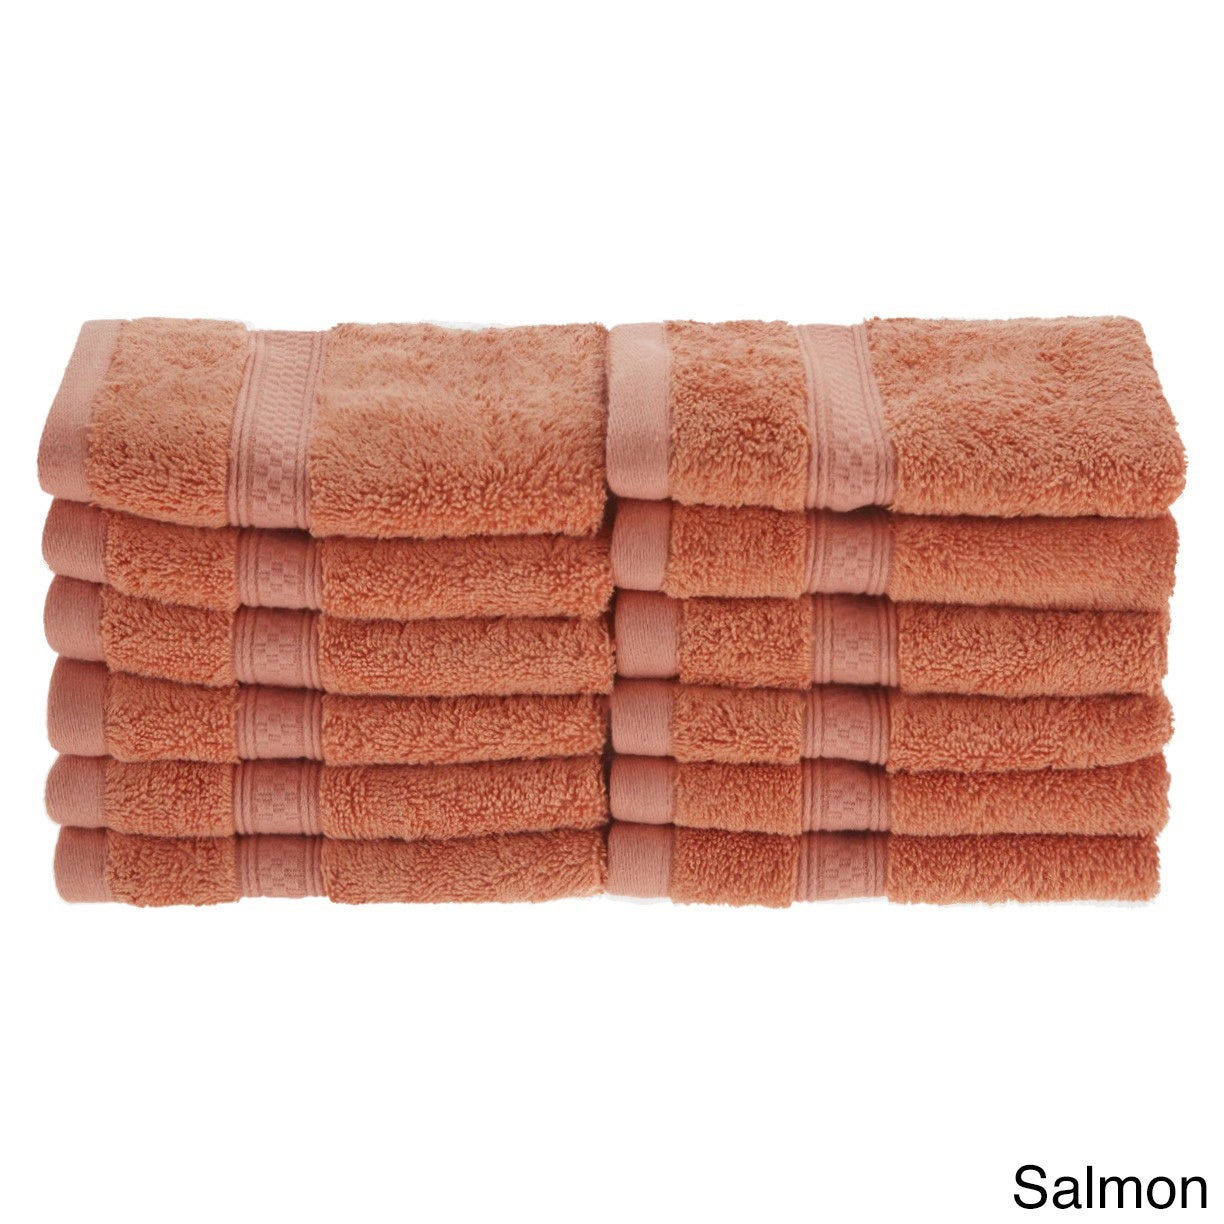 Superior Soft, Absorbent Rayon From Bamboo And Cotton Face Towel (Set Of  12)   Free Shipping On Orders Over $45   Overstock.com   17521635